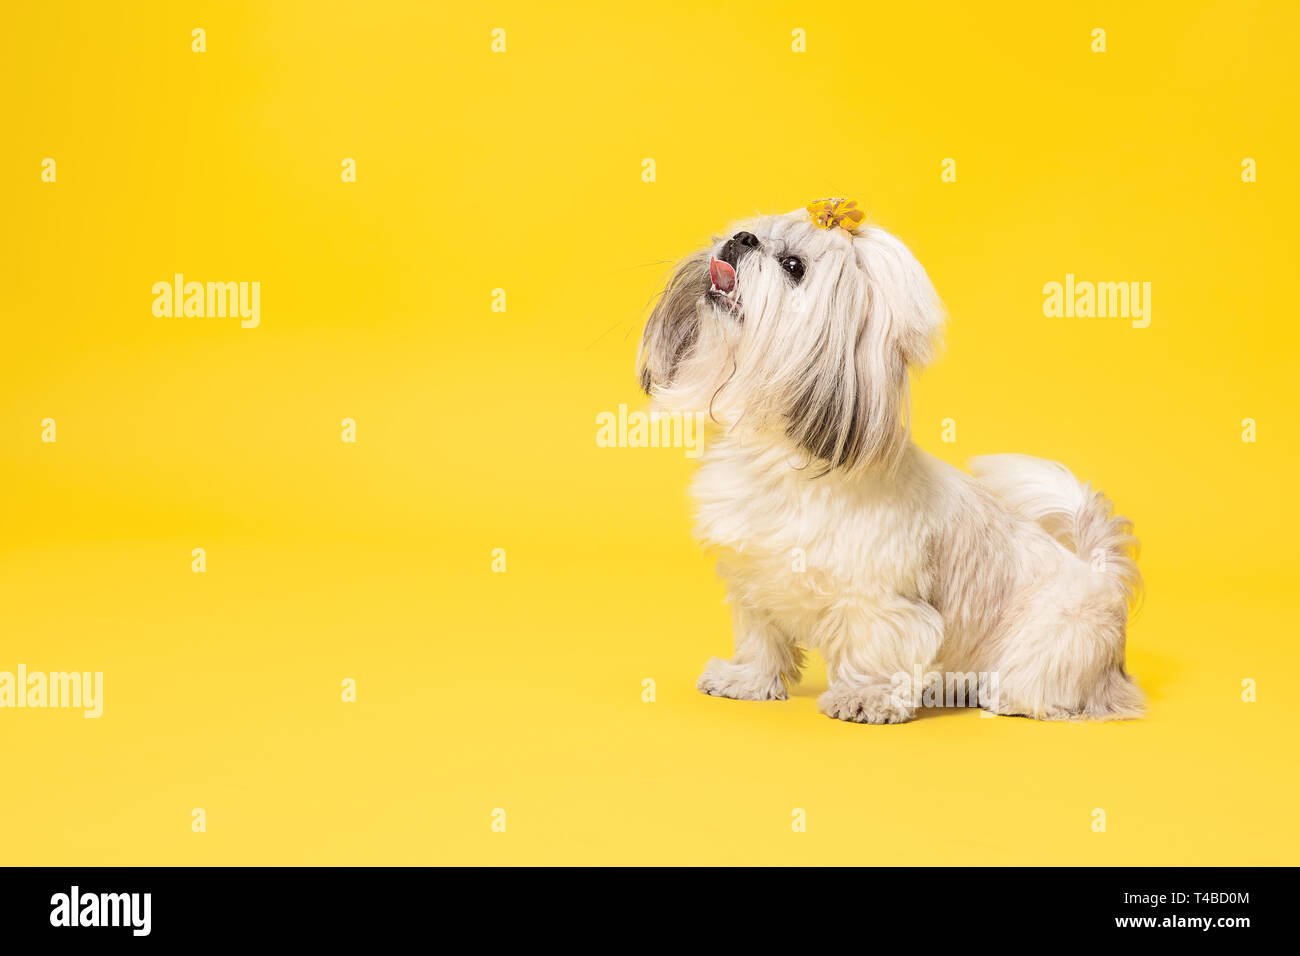 Shih Tzu Puppy Wearing Orange Bow Cute Doggy Or Pet Is Standing Isolated On Yellow Background The Chrysanthemum Dog Negative Space To Insert Your Text Or Image Stock Photo Alamy